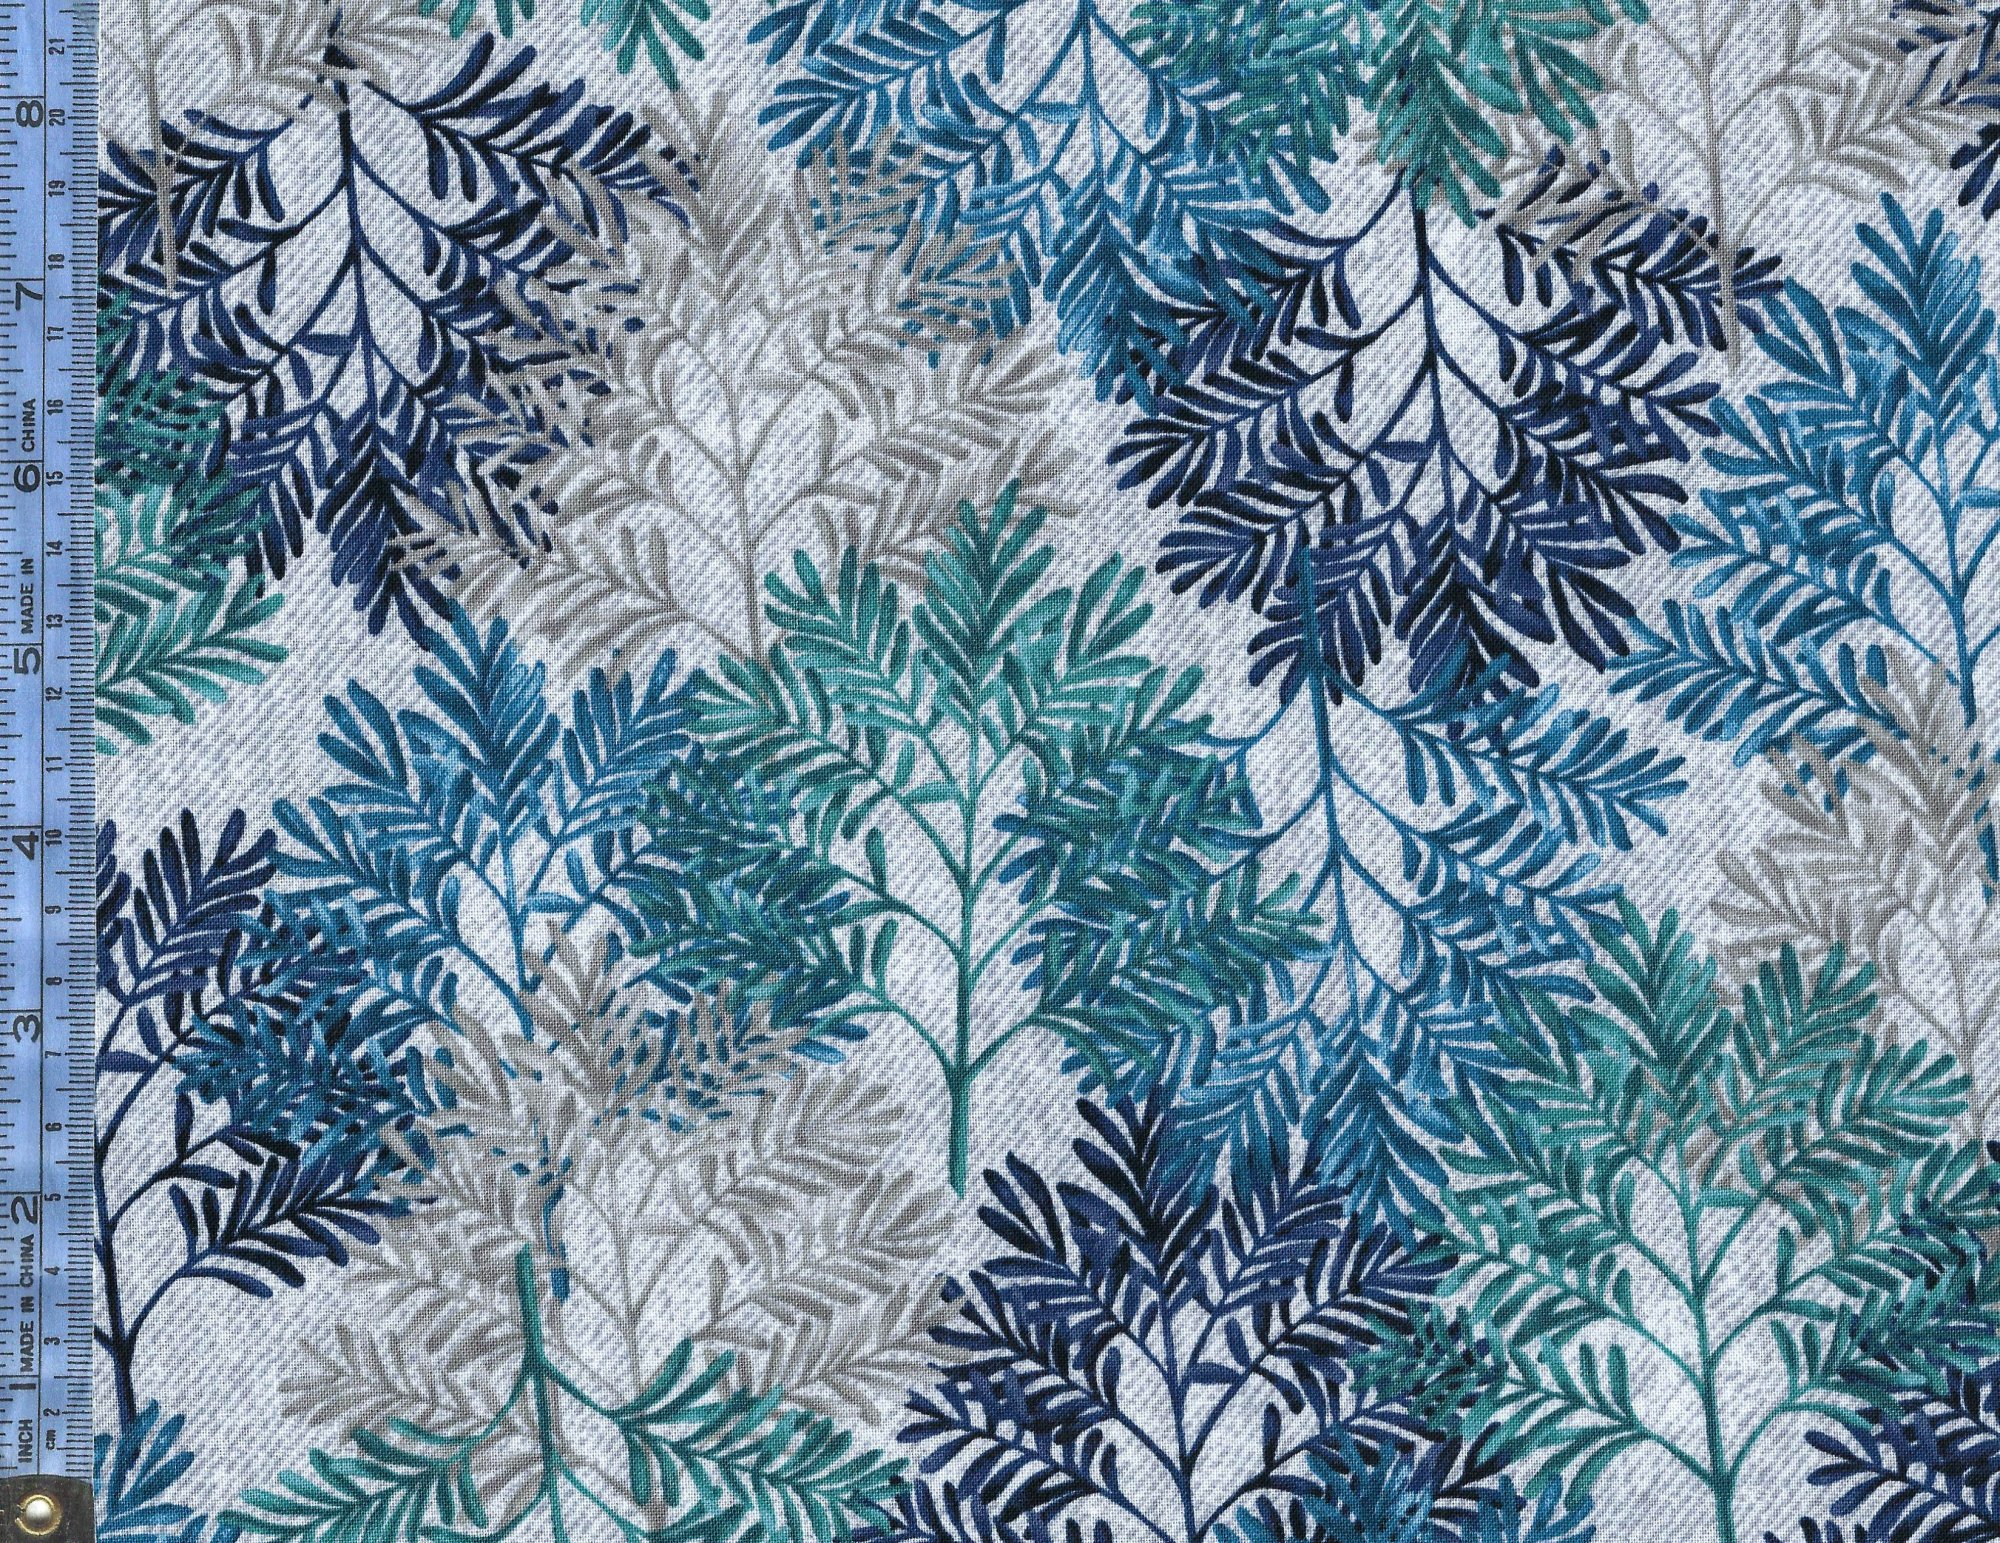 Denim Blues - (120-14141) blue navy blue teal and gray leaves on look-of blue-gray stonewashed denim background